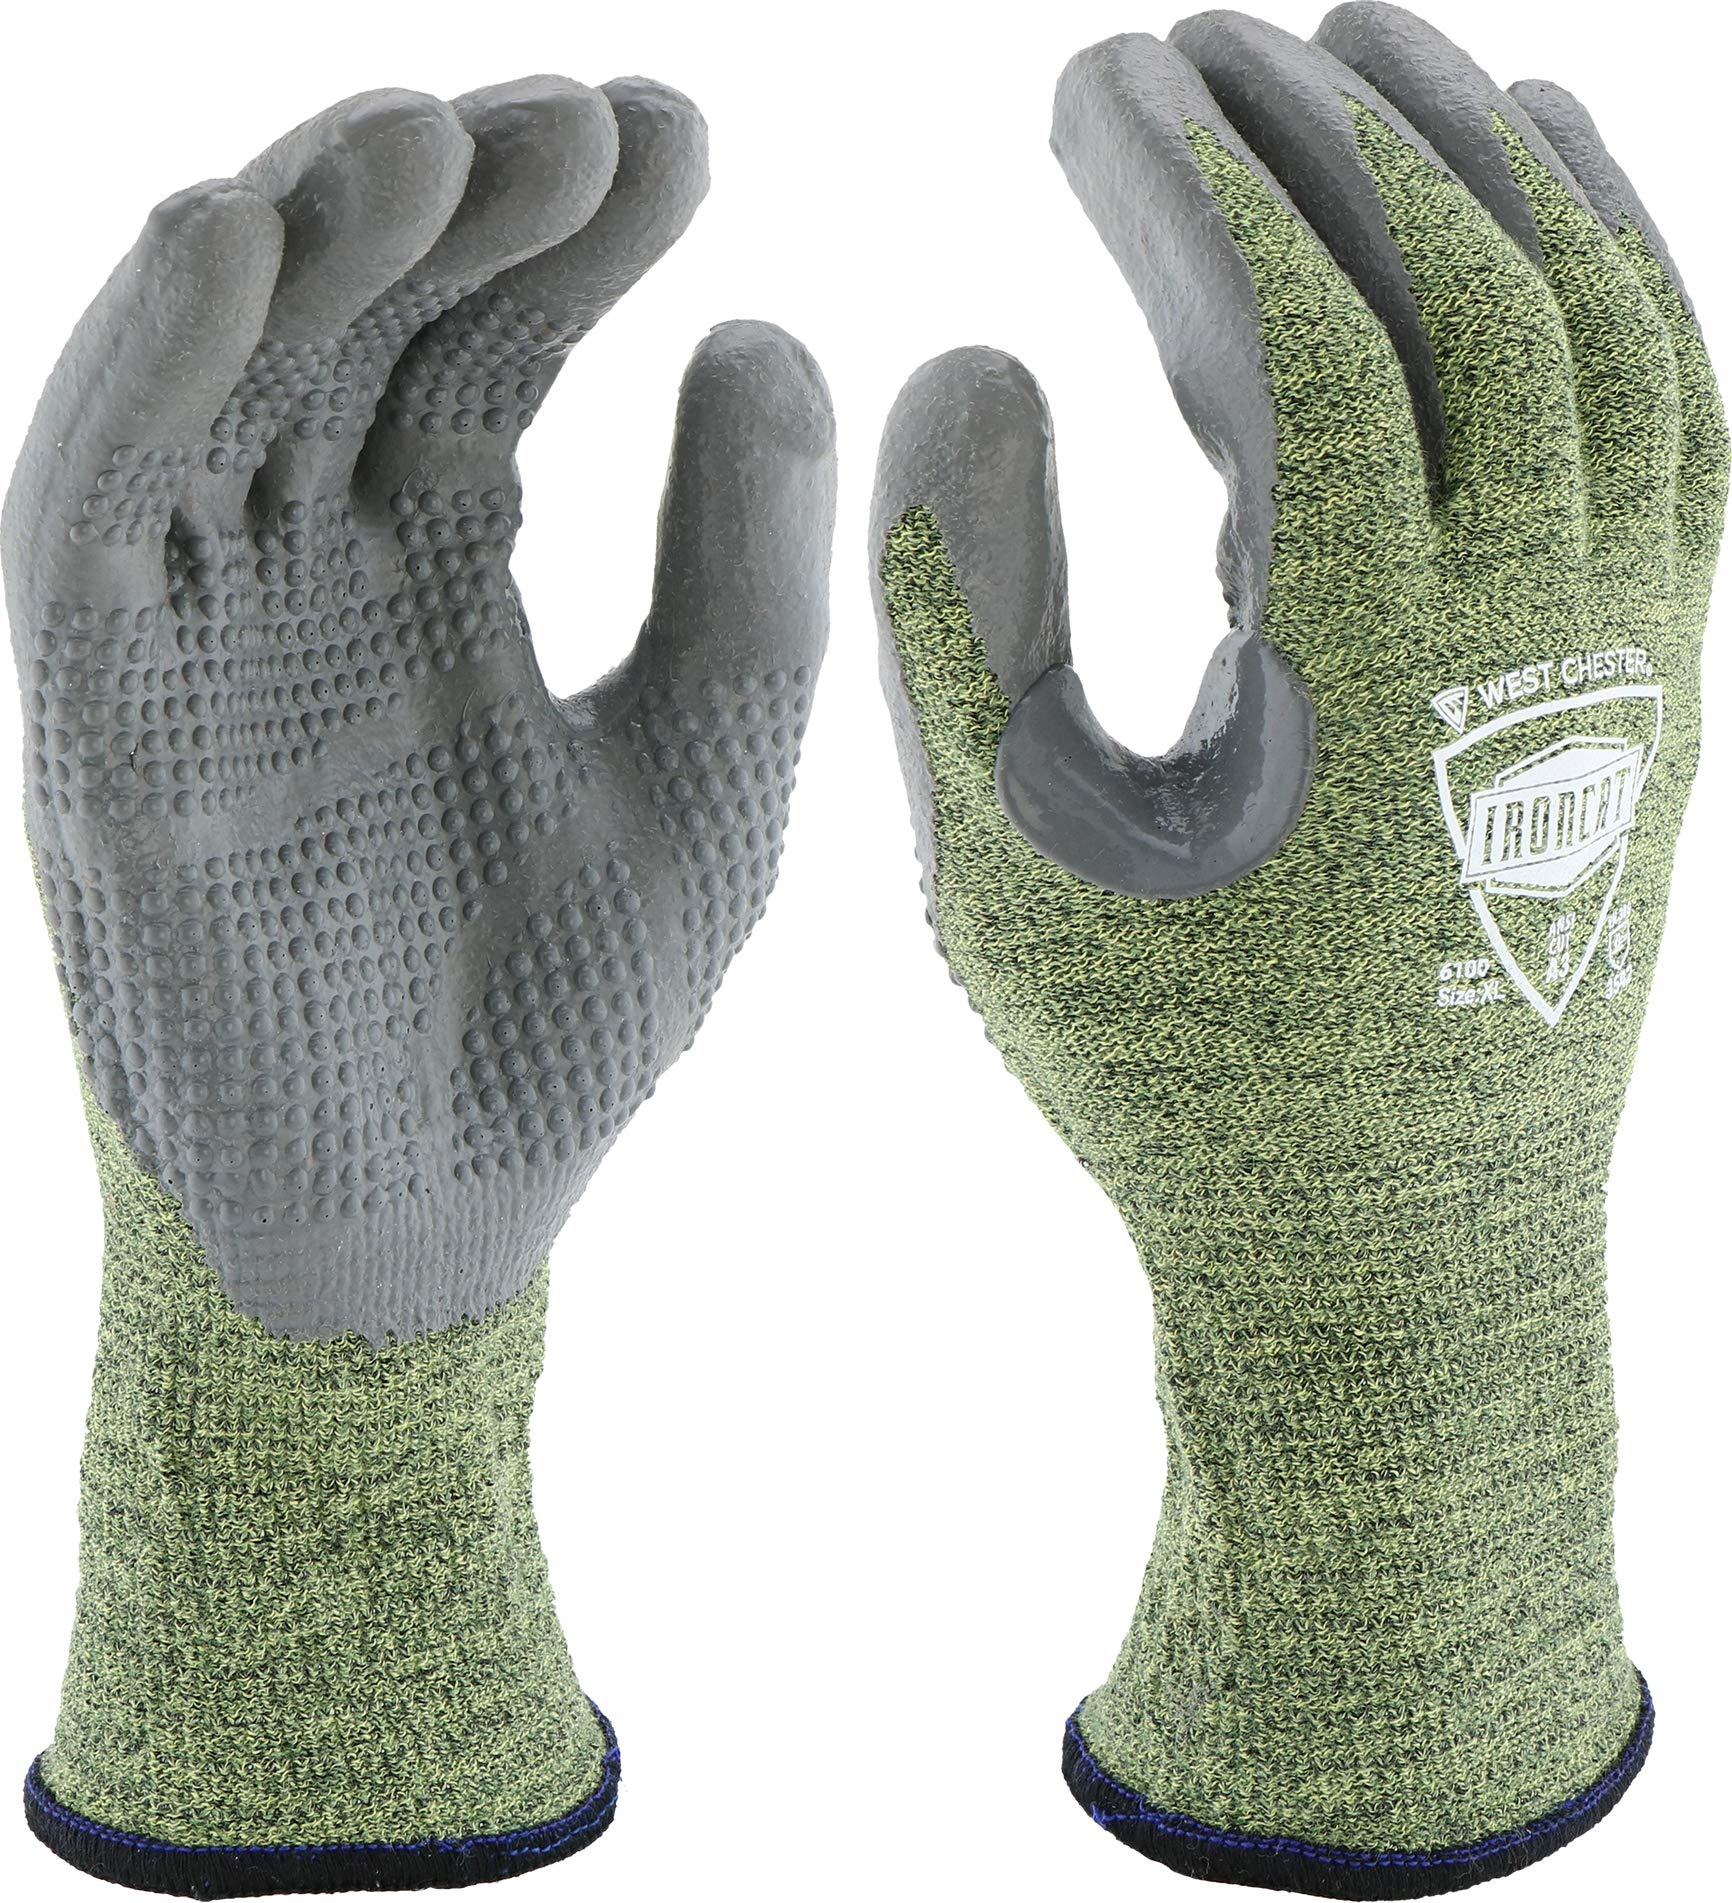 West Chester IRONCAT 6100 Metal Tamer TIG Welding Gloves - [1 Pair] Large, Seamless Knit Blend, Fire Resistant Silicone Coated Palm Knit. Welder Safety Wear